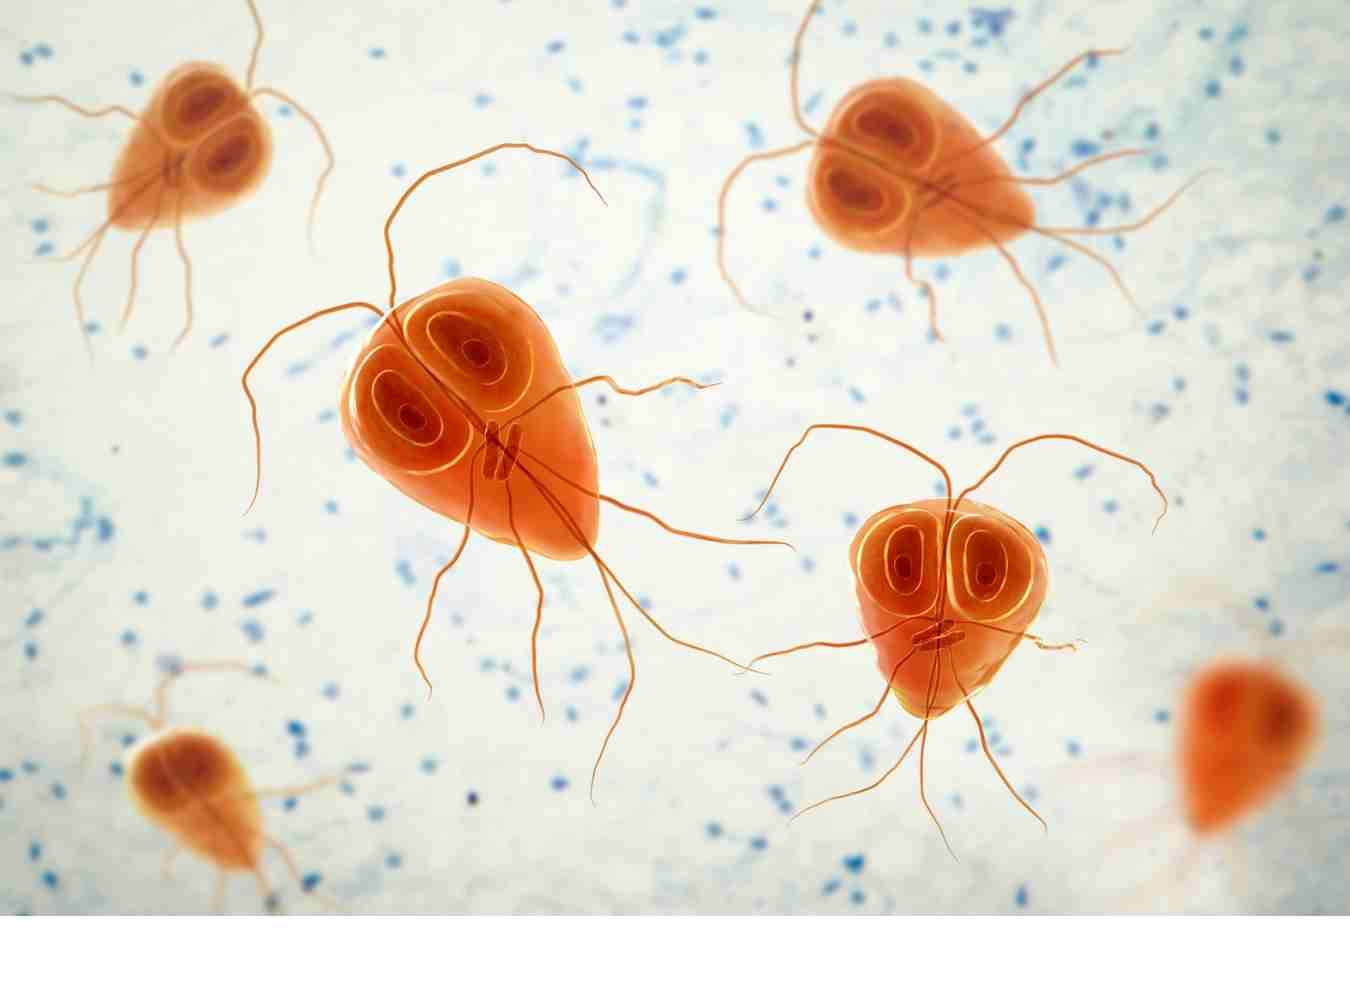 picture of giardia parasites under microscope